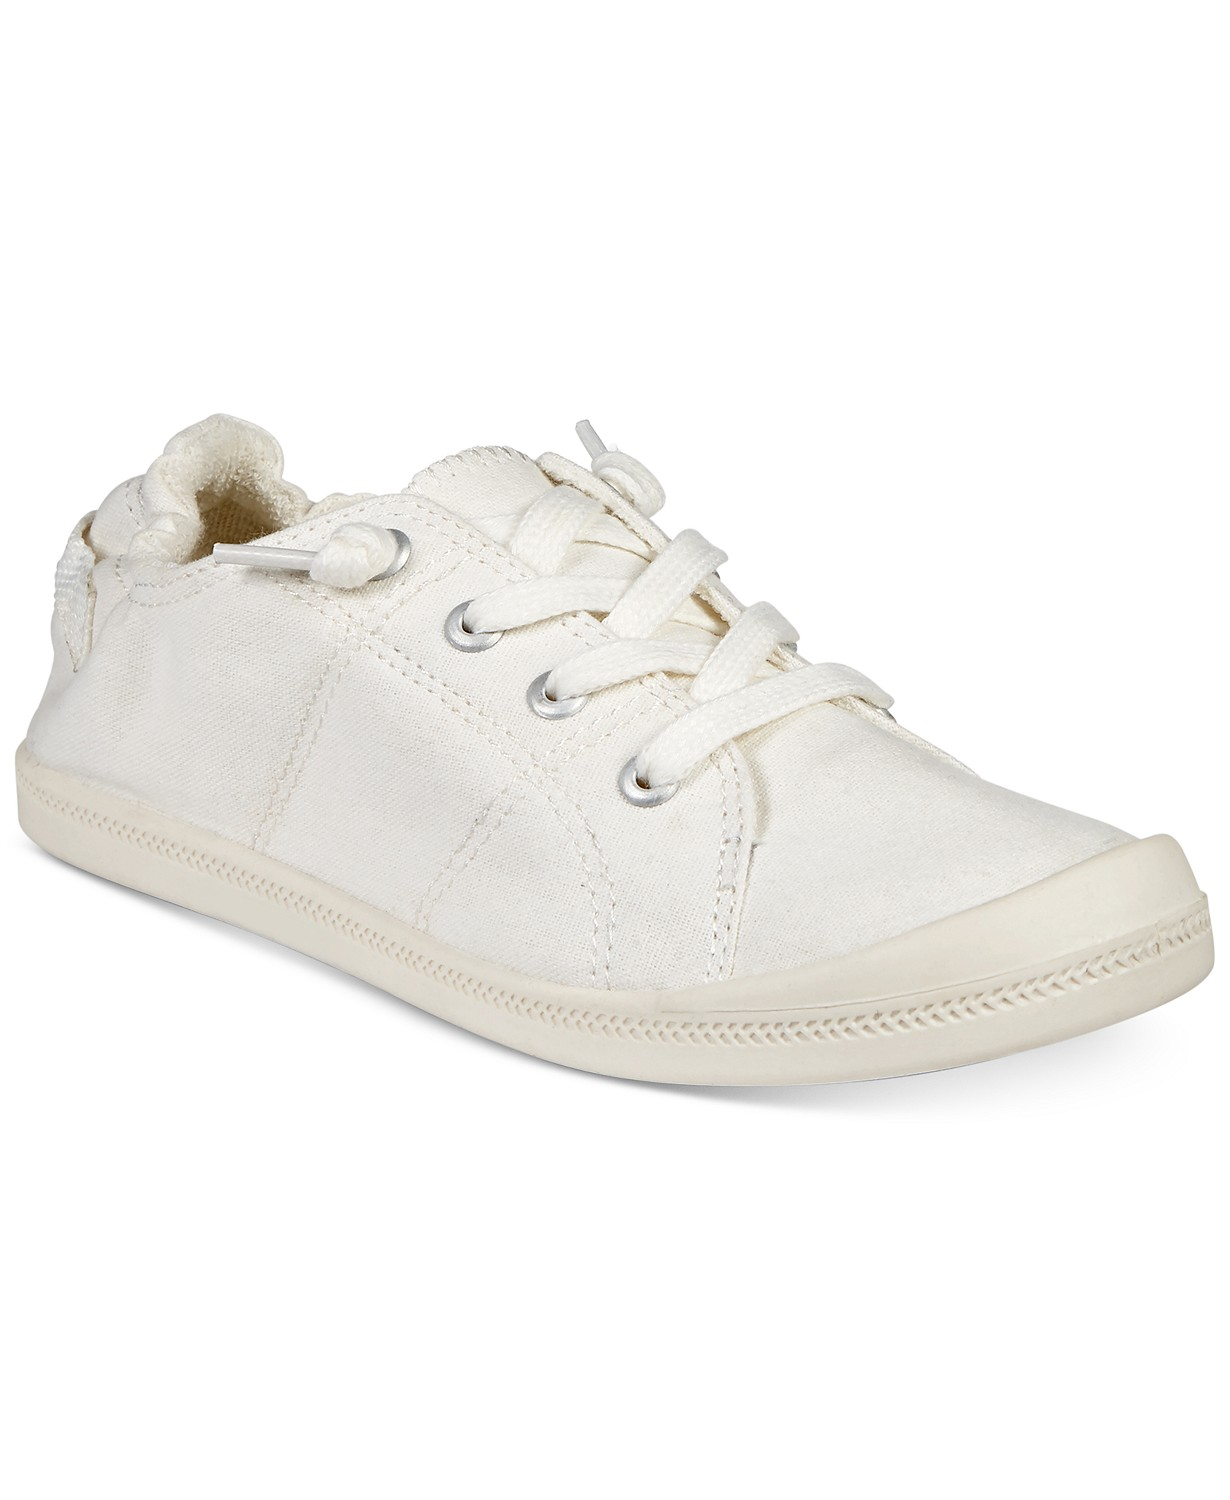 White Canvas Sneaker.jpg